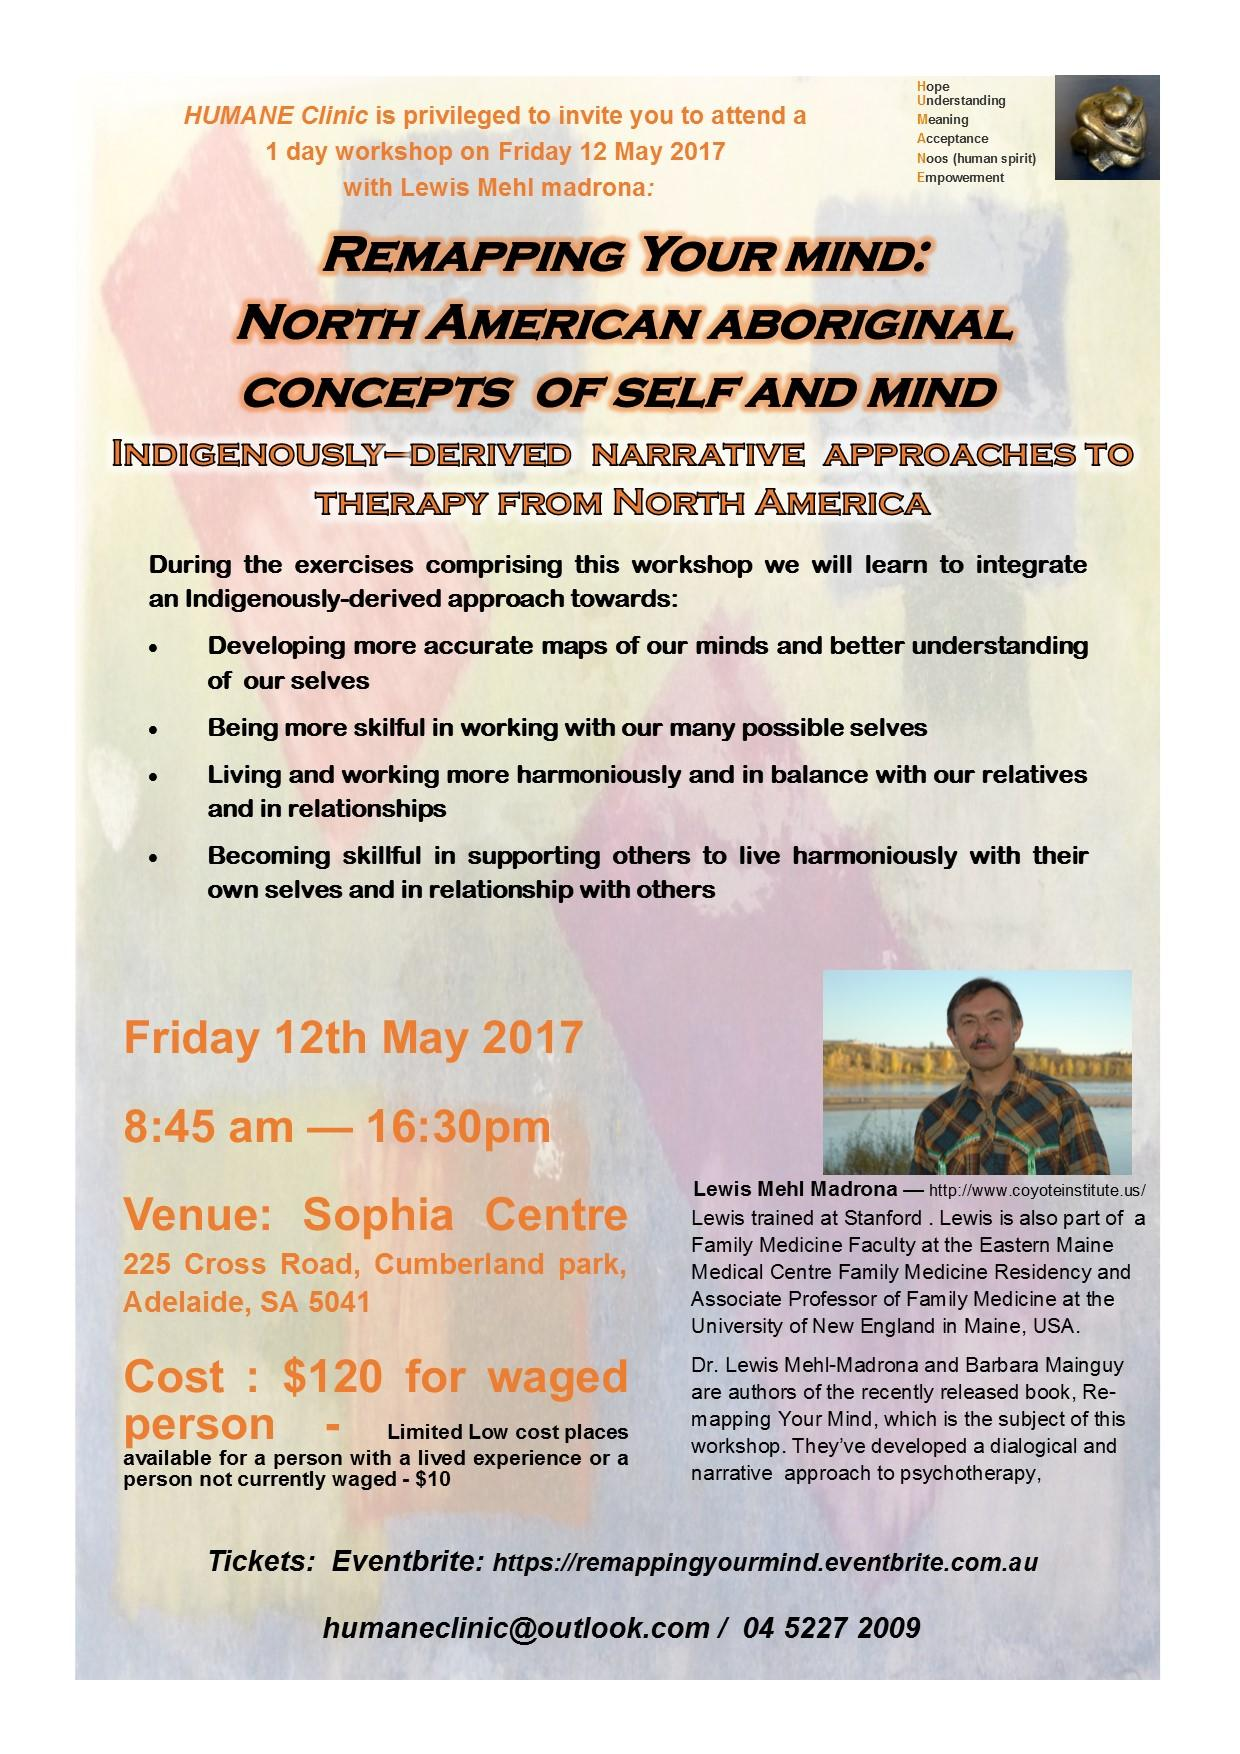 remapping you mind north american aboriginal concepts of self and